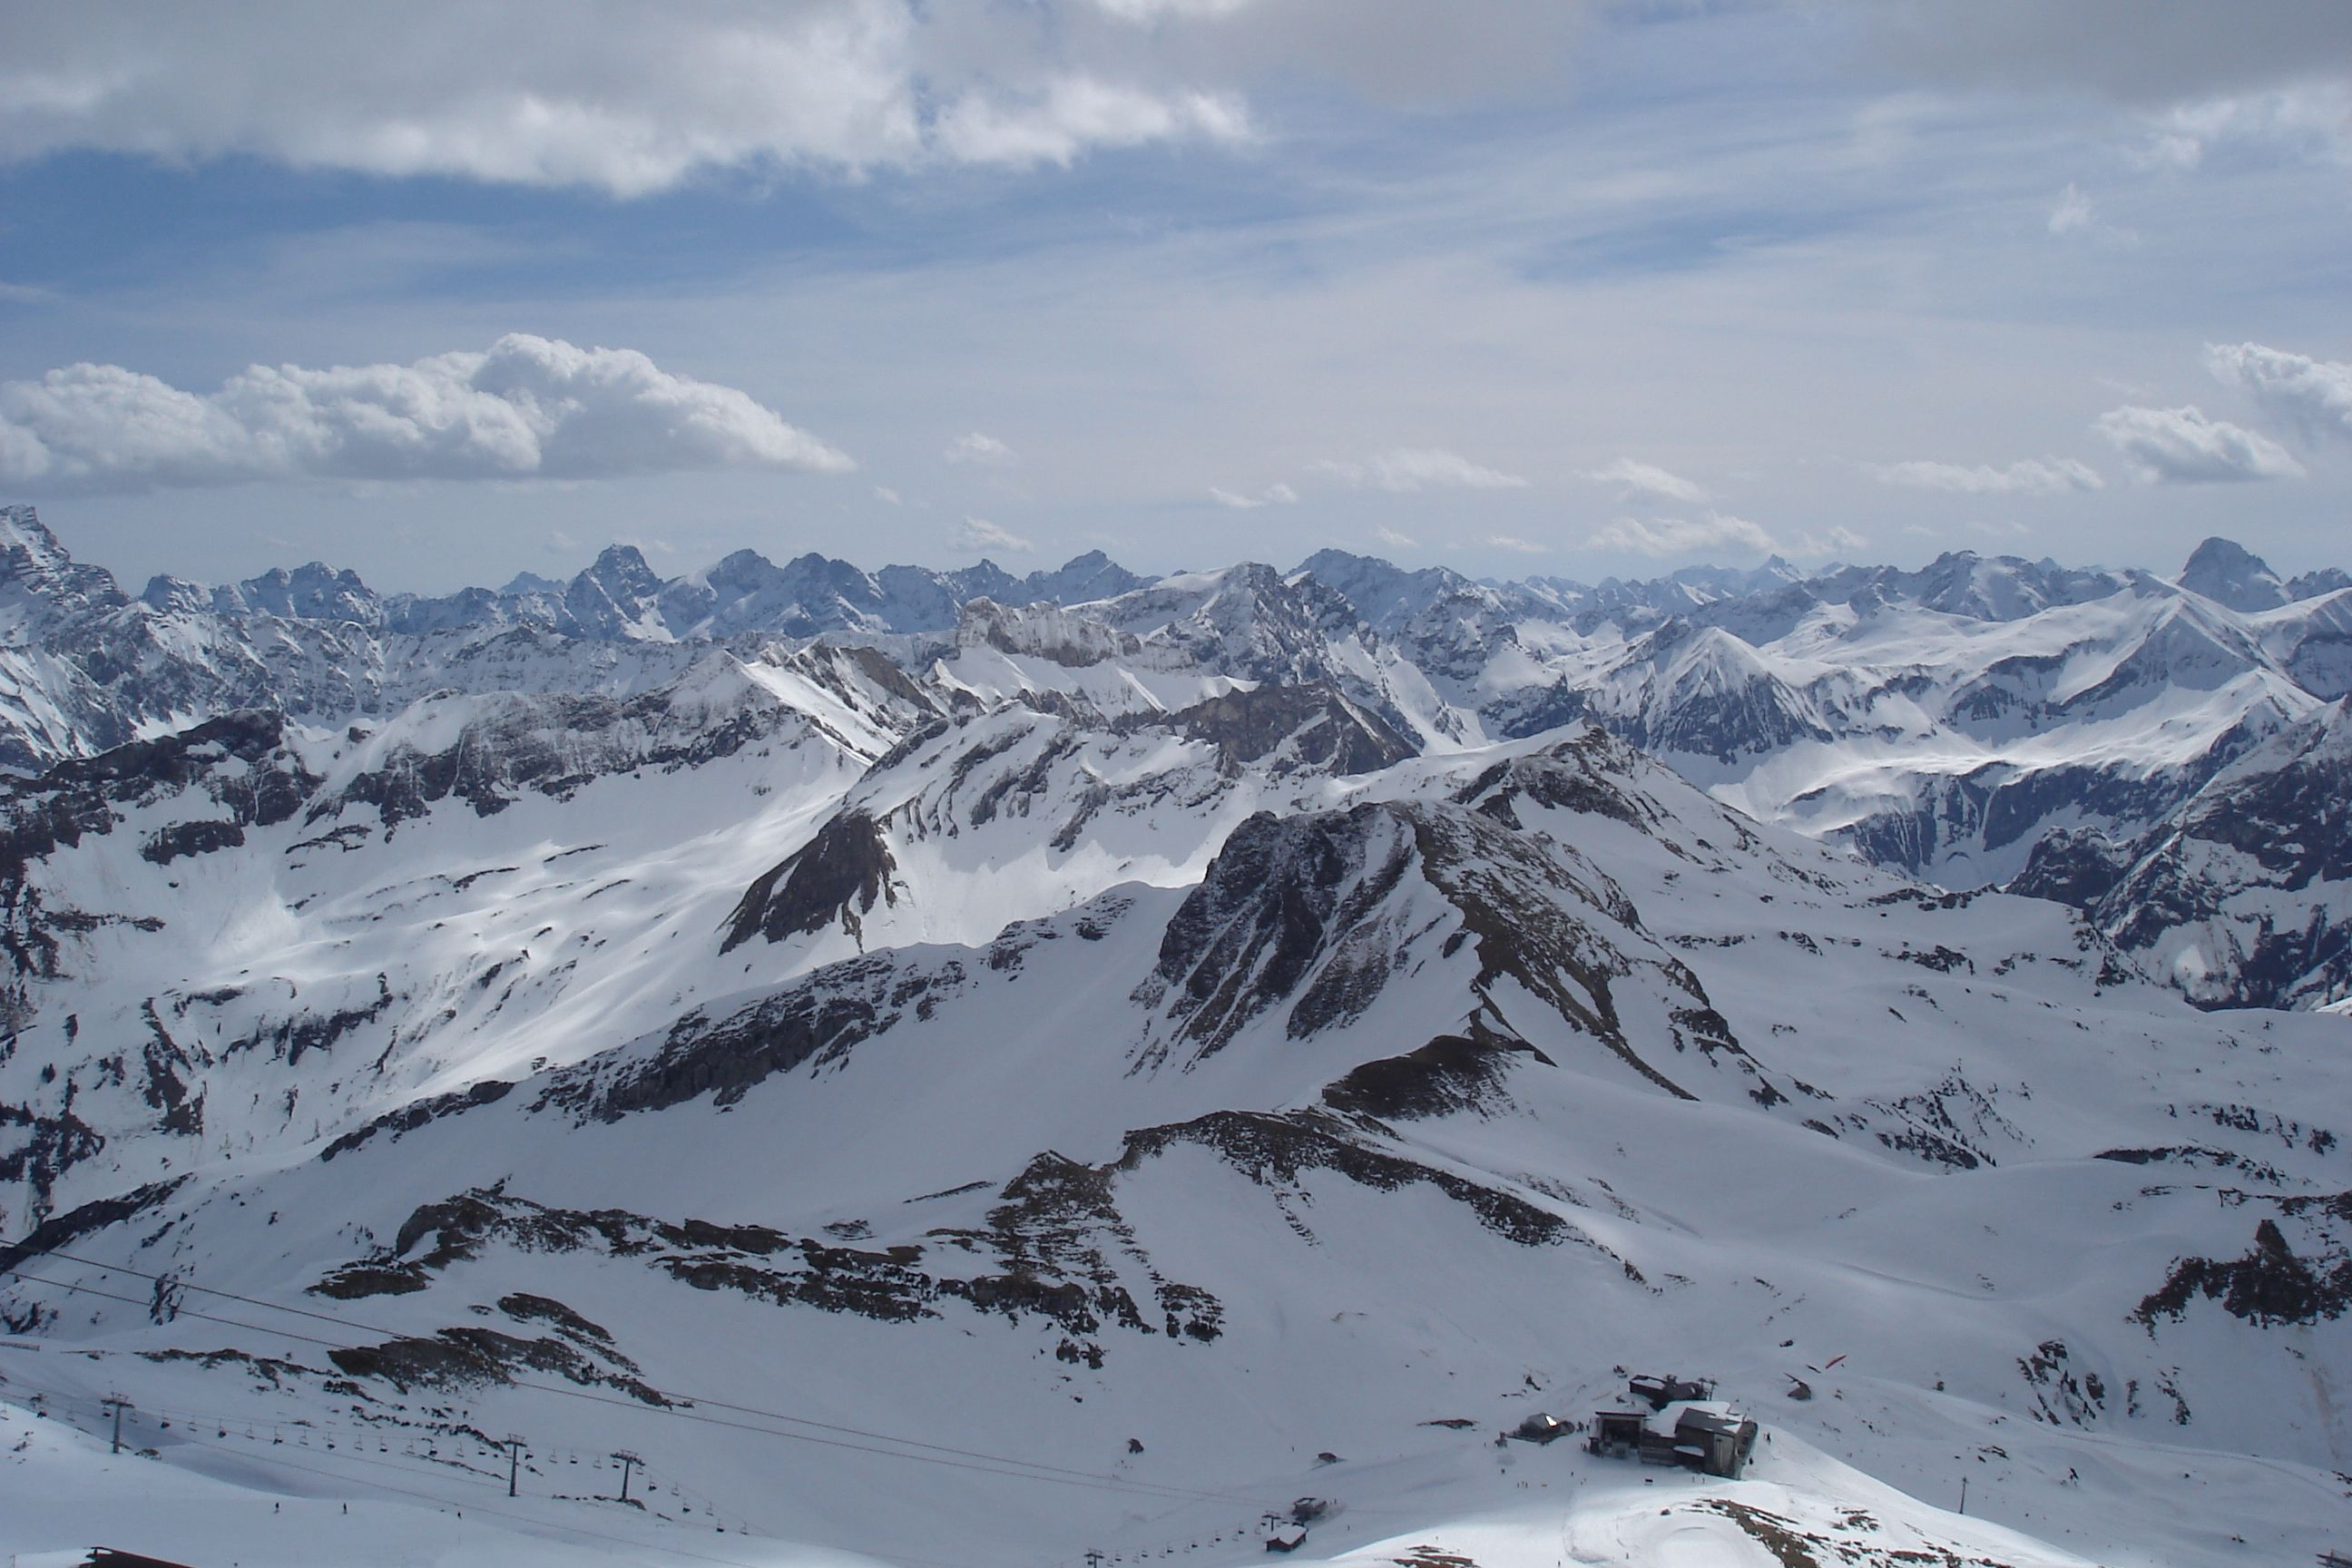 View from the top of the Nebelhorn Oberstdorf Germany [2592x1728] [OC]